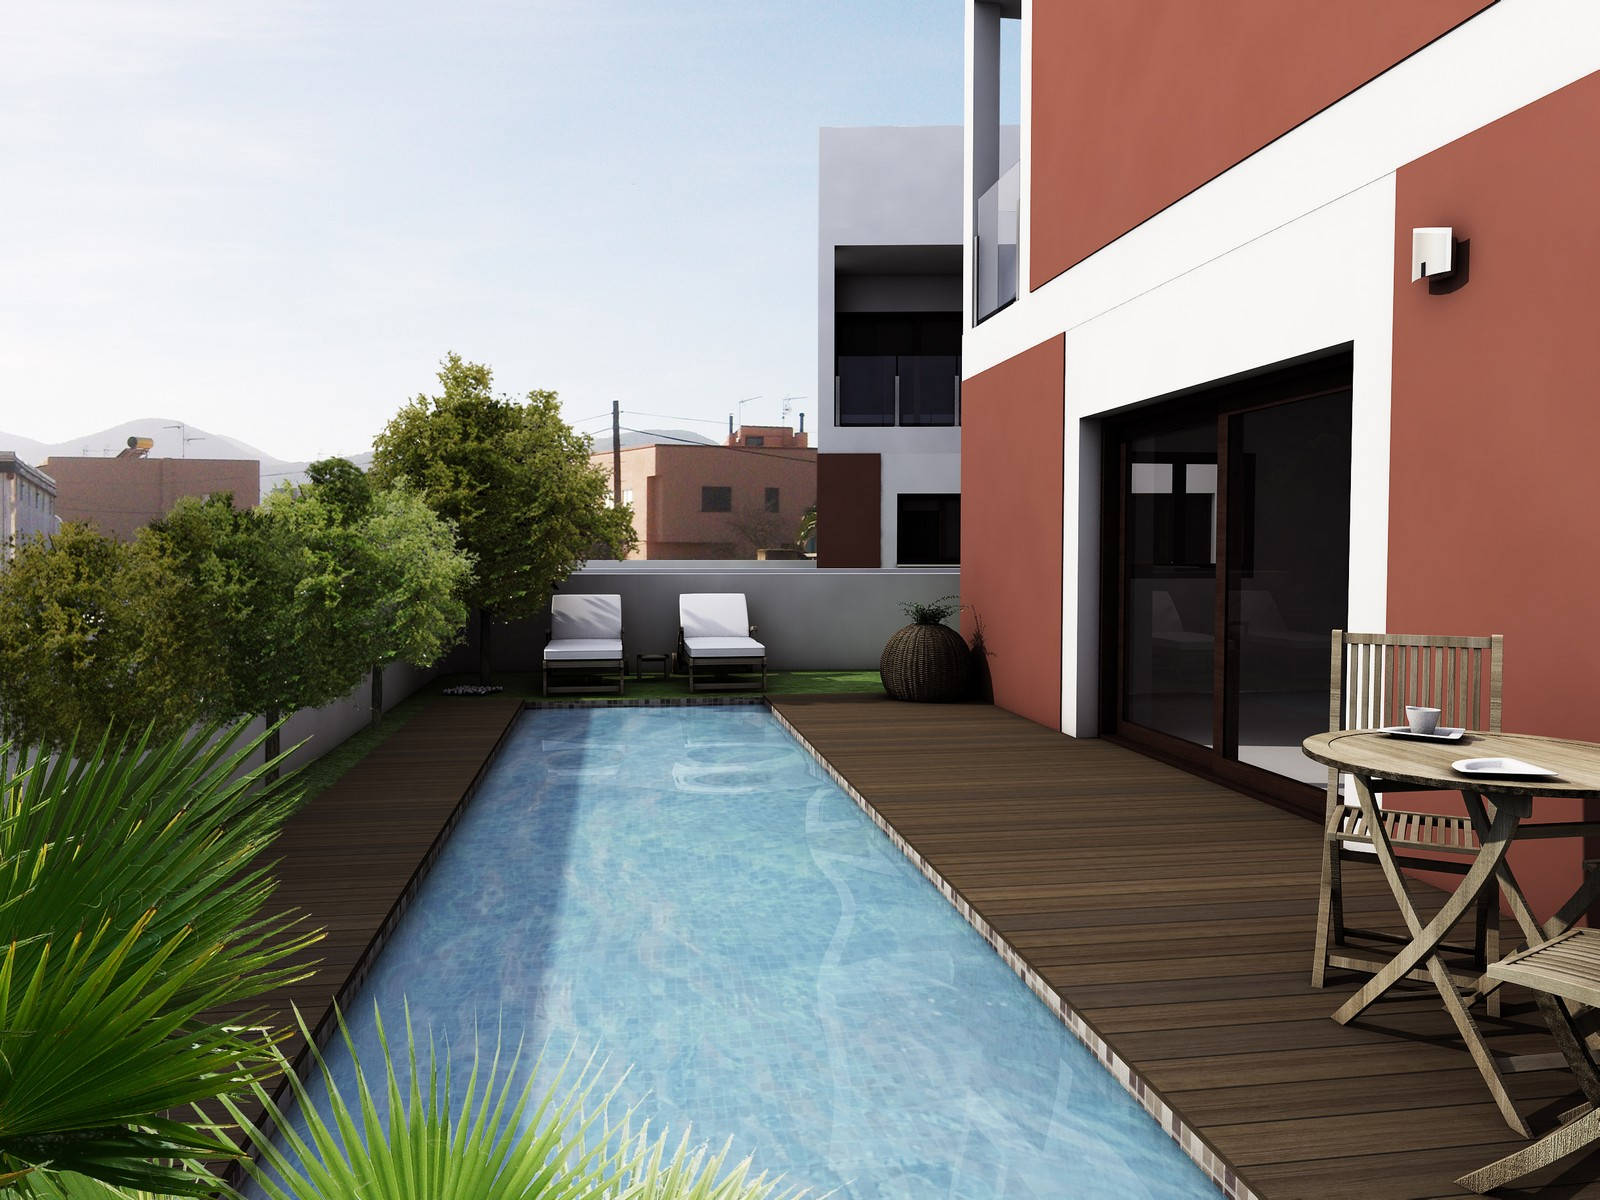 Single Family Home for Sale at Newly-Built Luxury Home Ibiza, Ibiza 07819 Spain